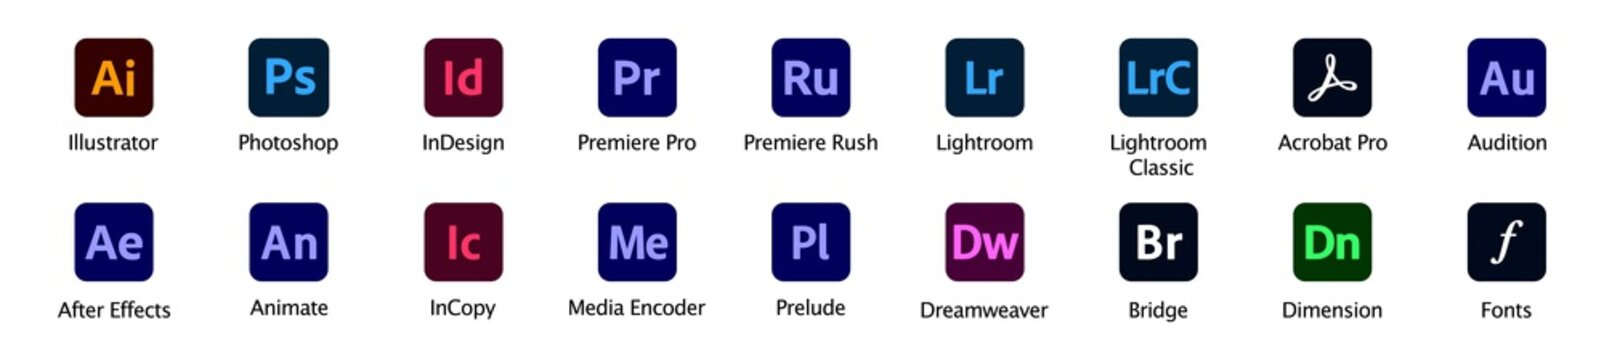 Adobe Products icons Illustrator, Photoshop, InDesign, Premiere Pro, After Effects, Acrobat DC, Lightroom, Dreamweaver